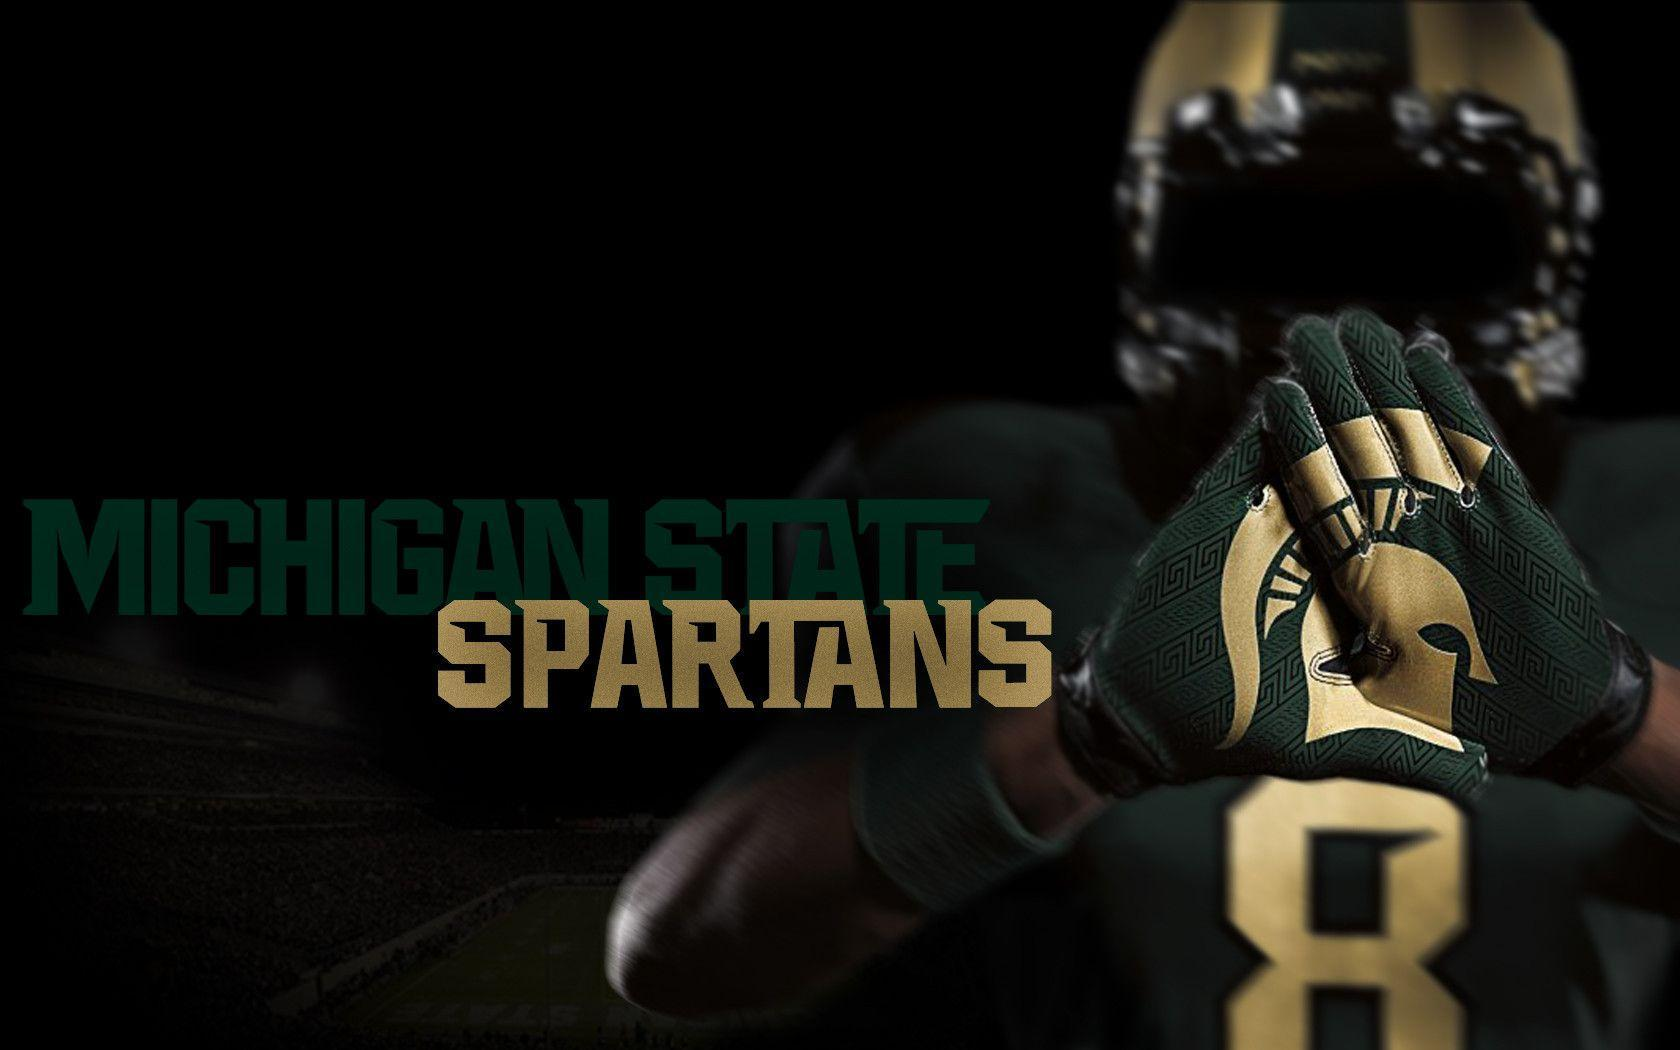 michigan state spartans wallpapers